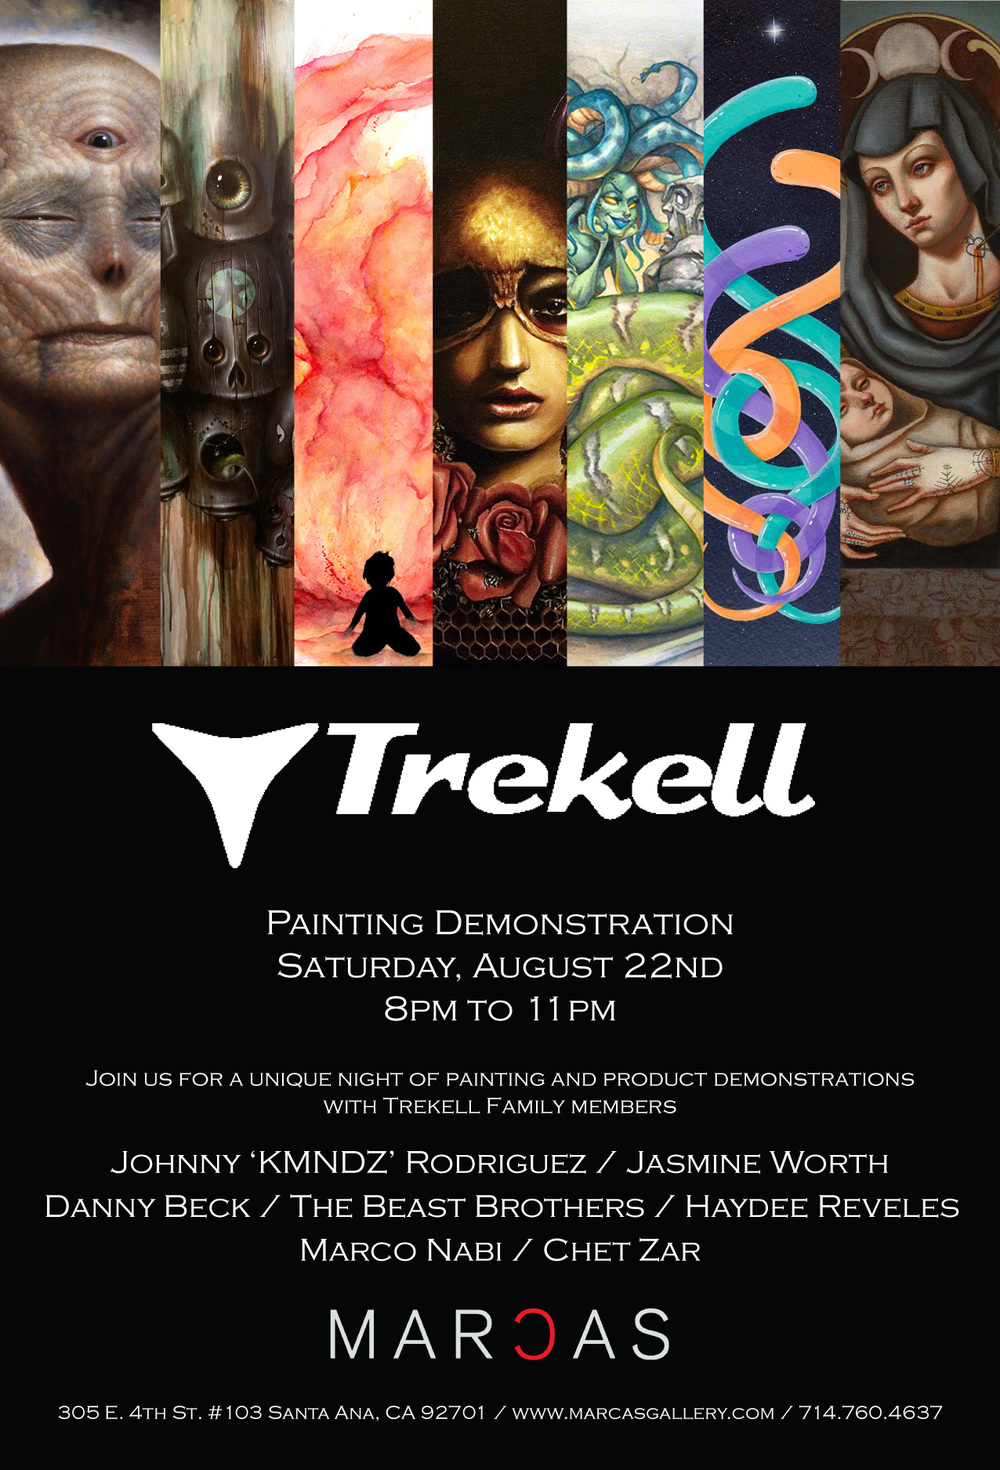 Trekell Painting Demo Aug 21st.jpg